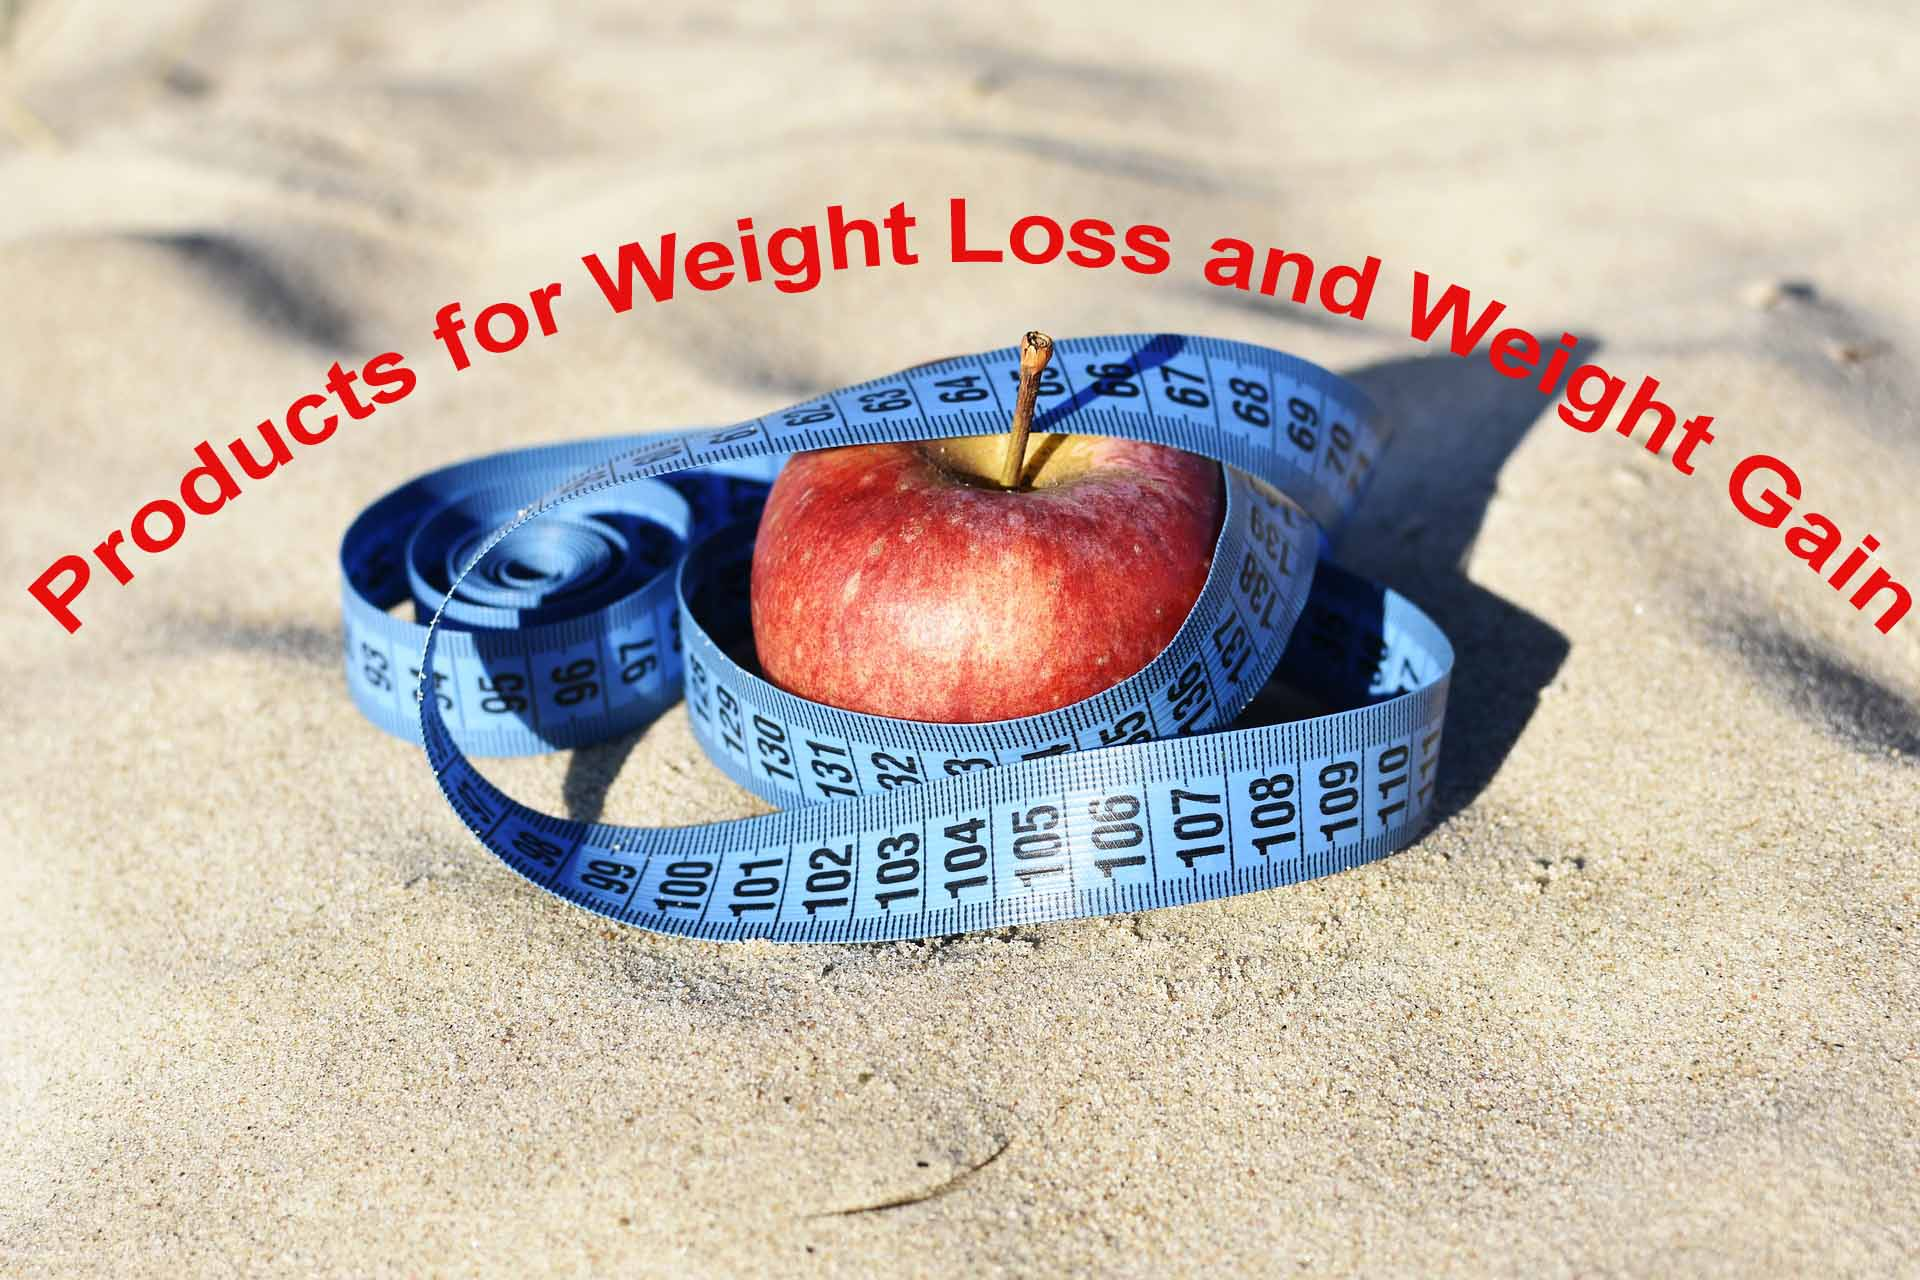 Products for Weight Loss and Weight Gain